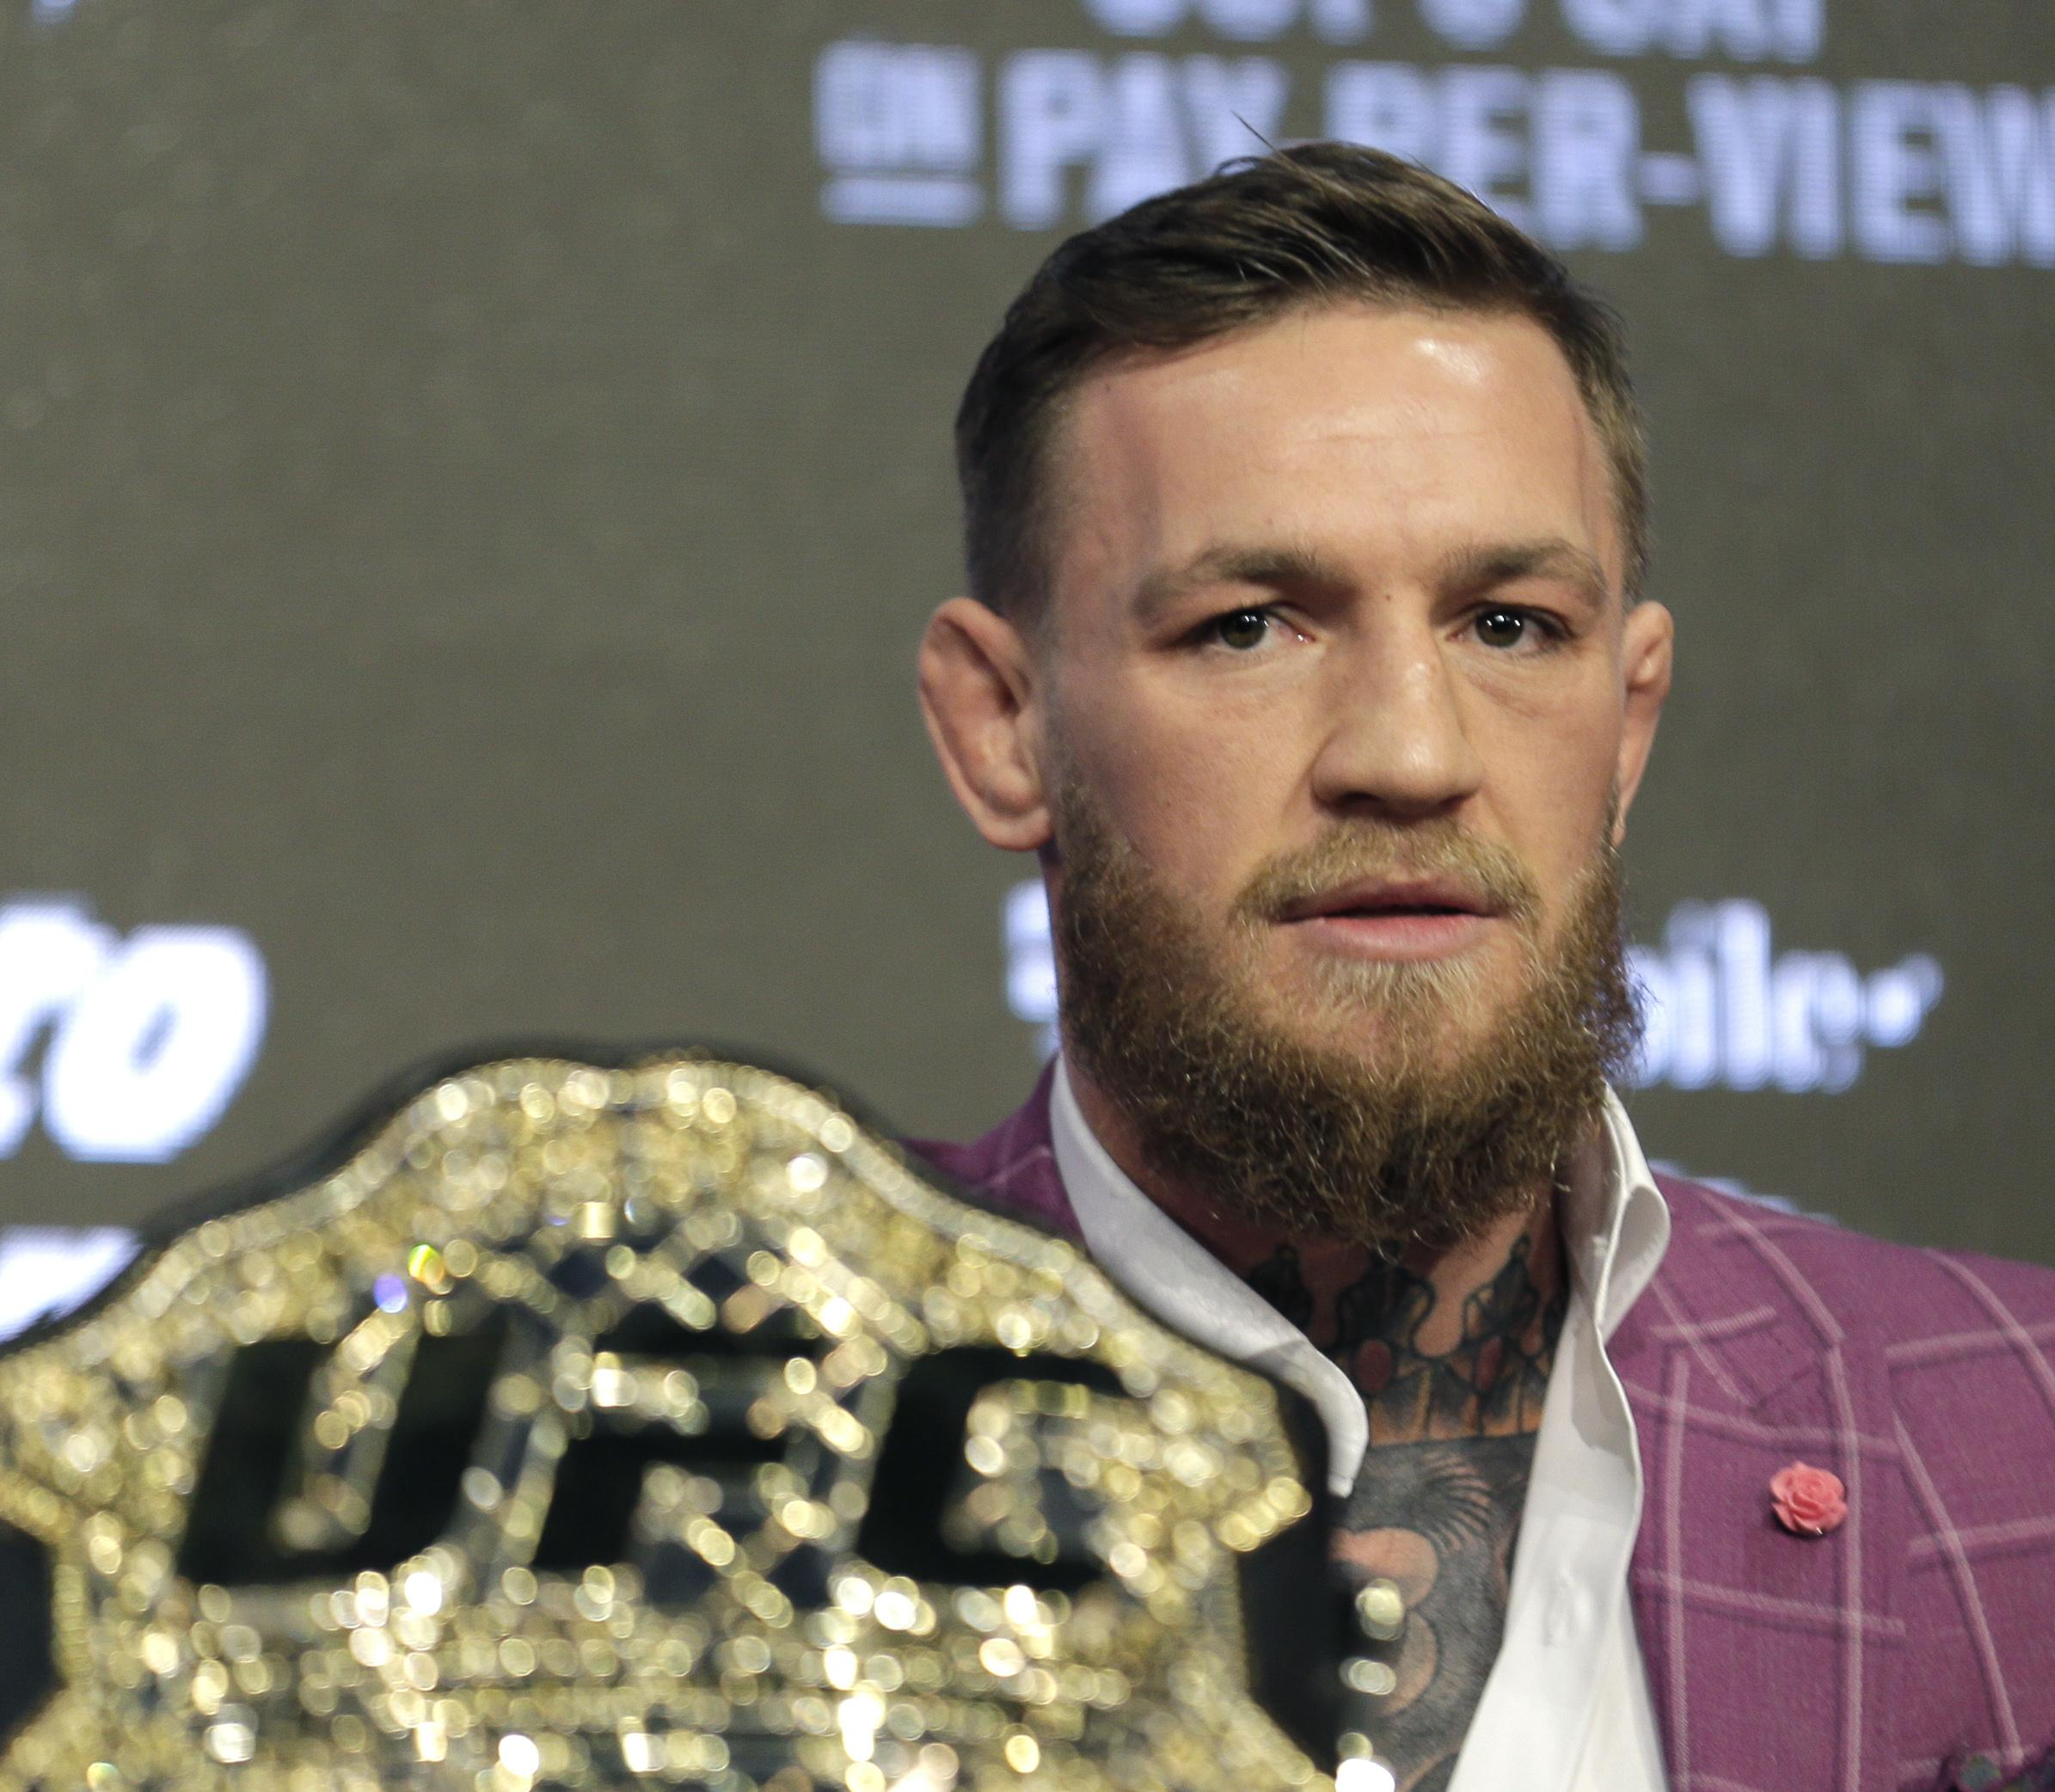 Figures show McGregor's main Irish firm had accumulated losses of £317,055 at the end of December